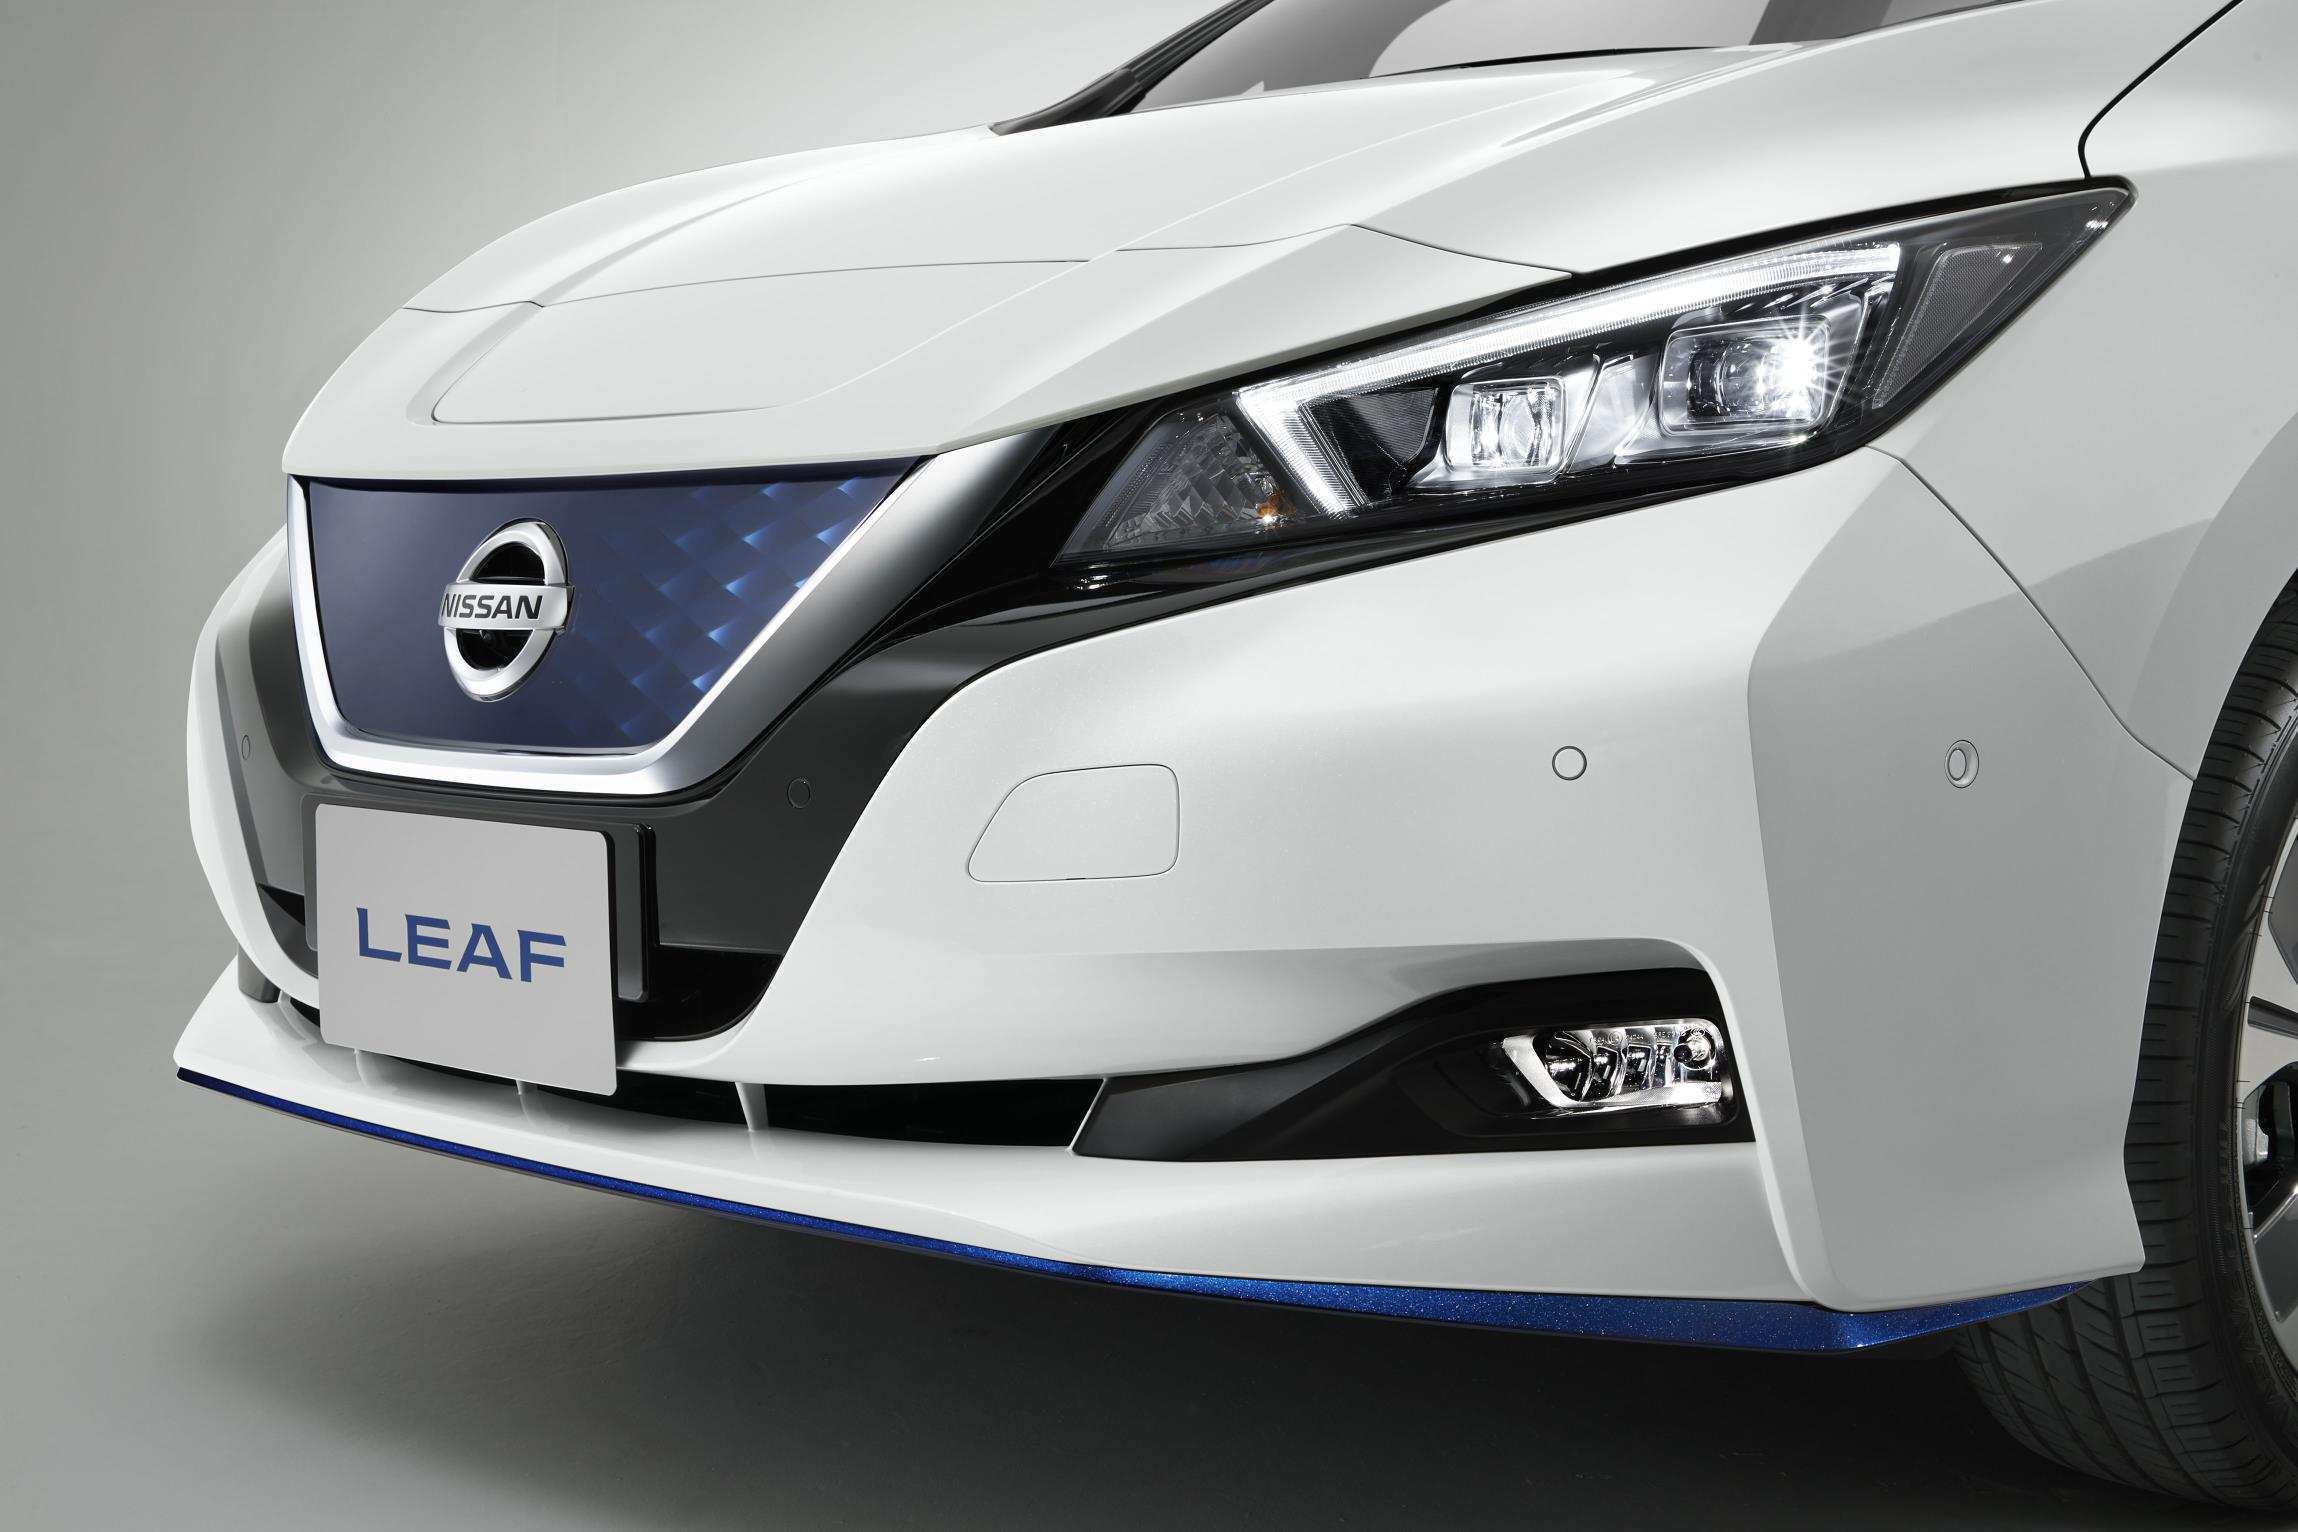 90 Gallery of Nissan Leaf 2019 60 Kwh Exterior for Nissan Leaf 2019 60 Kwh